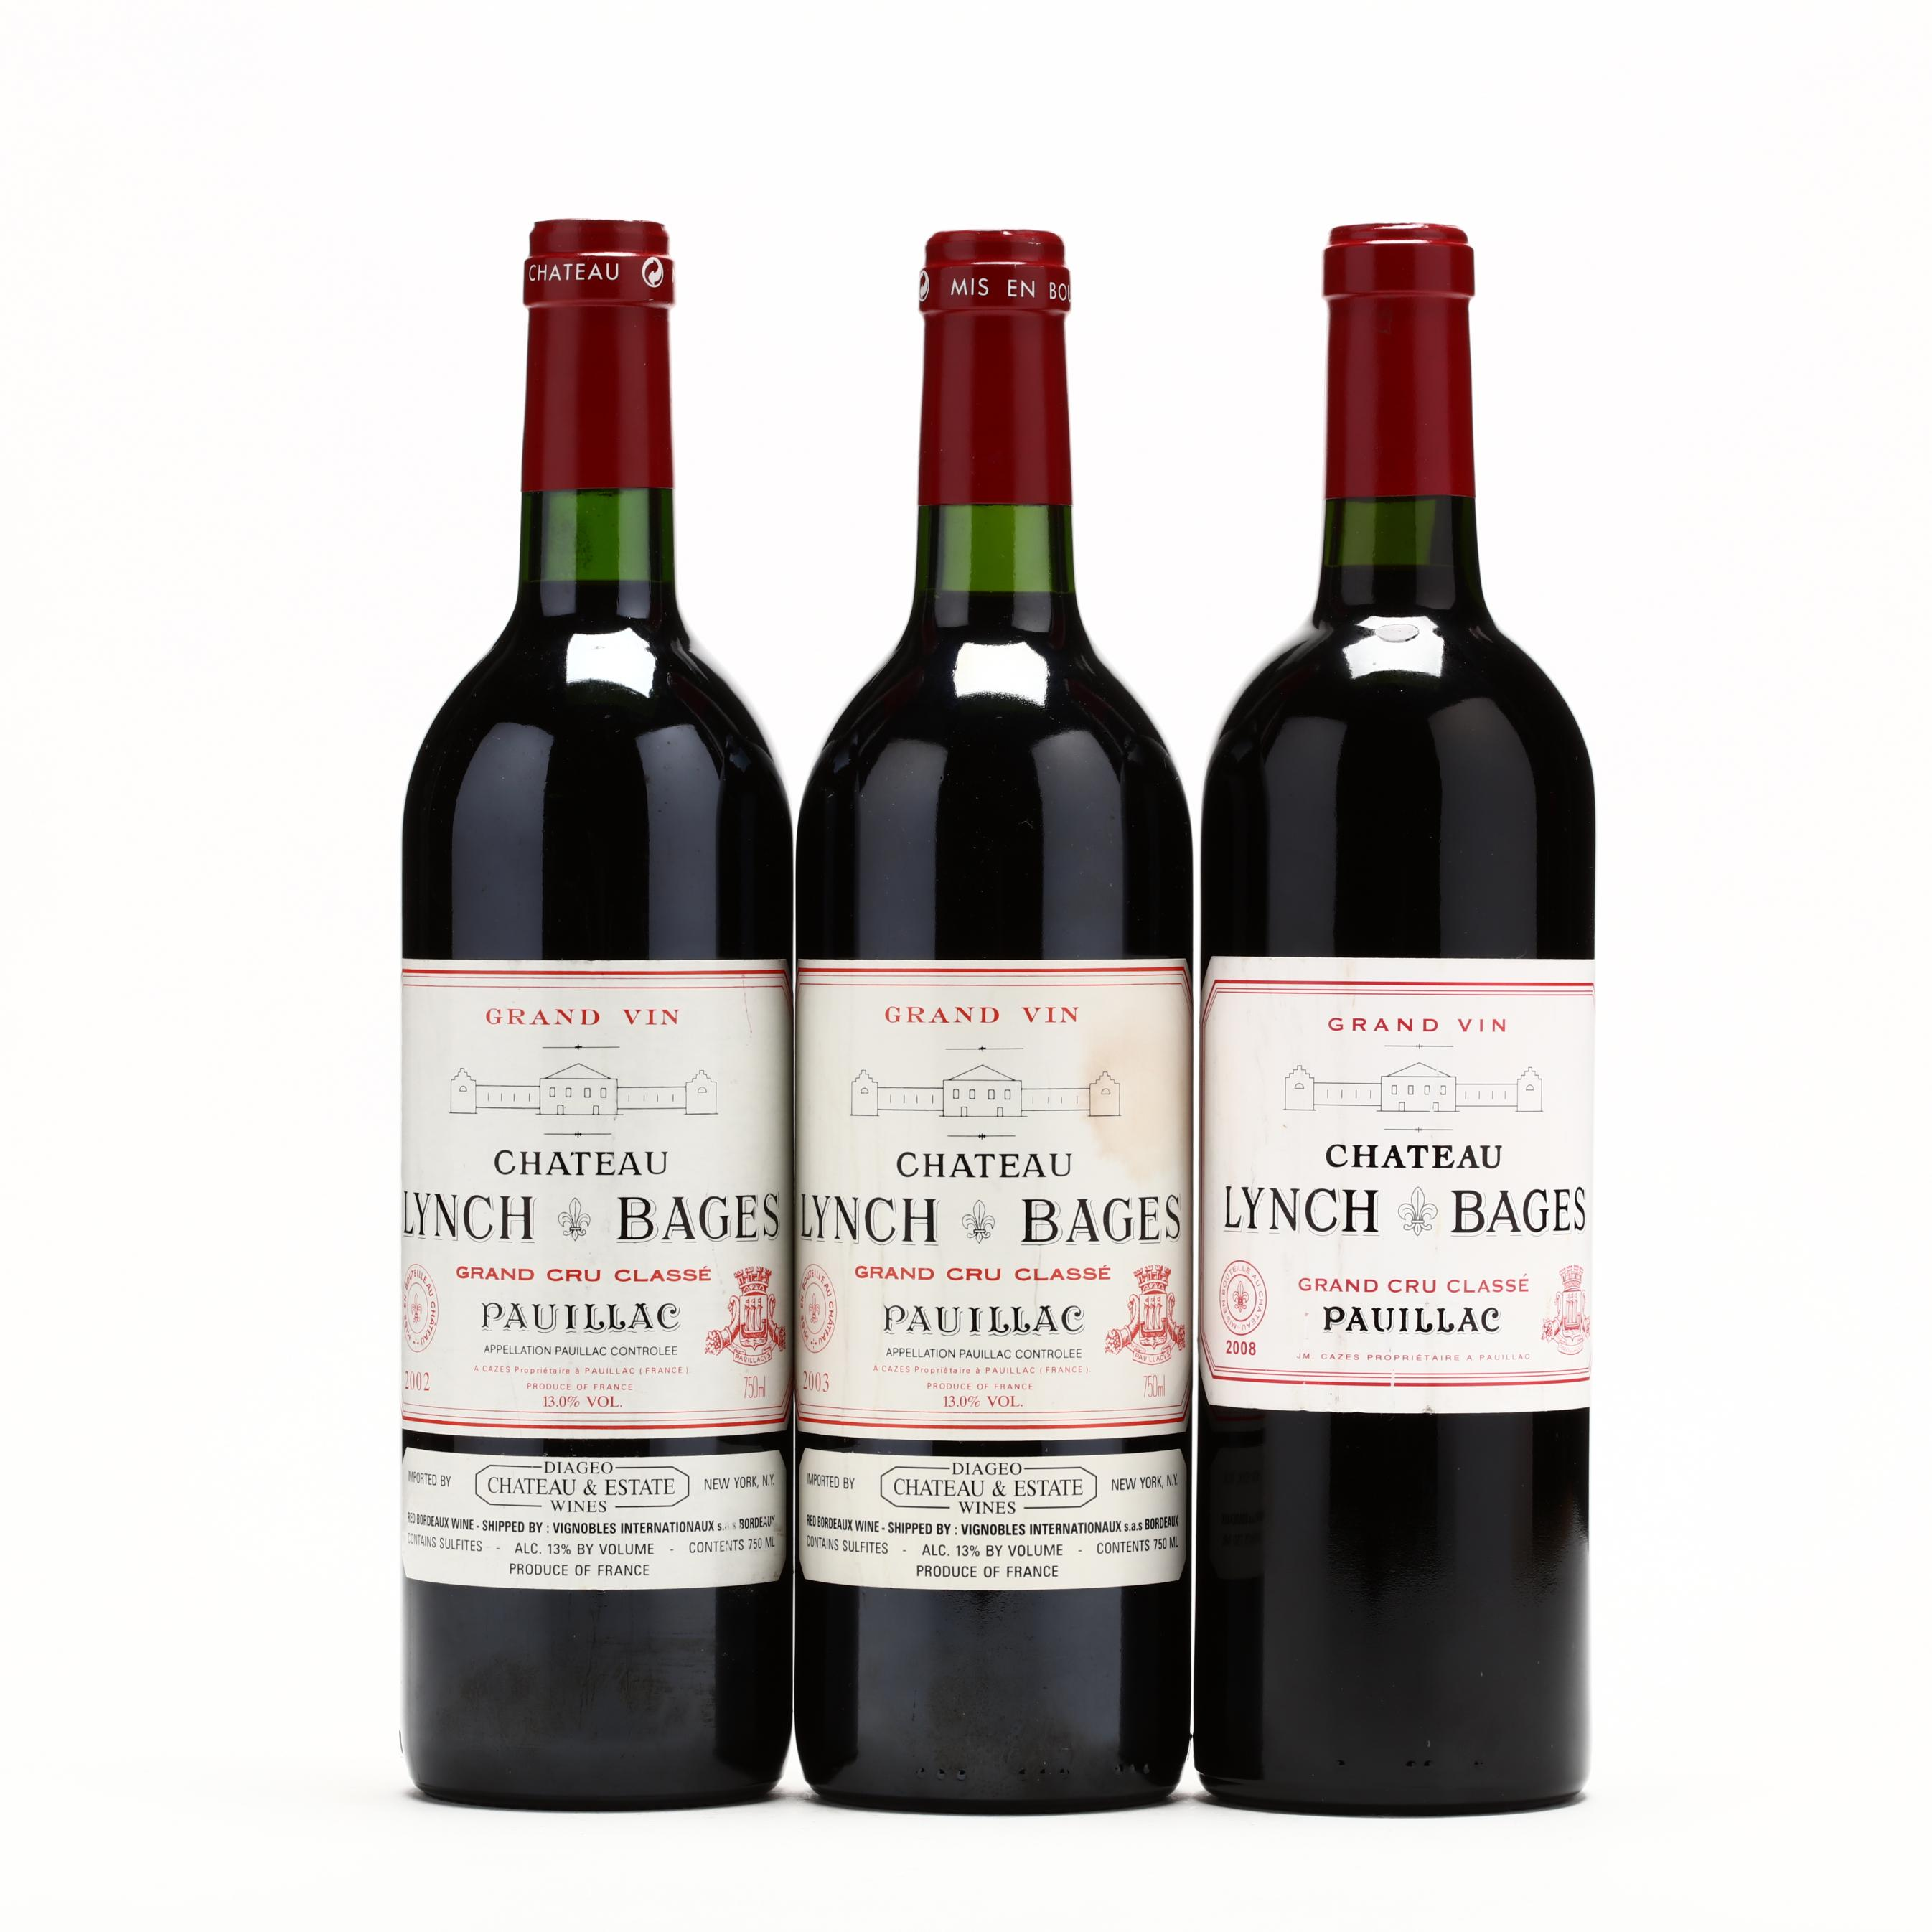 2002-2003-2008-chateau-lynch-bages